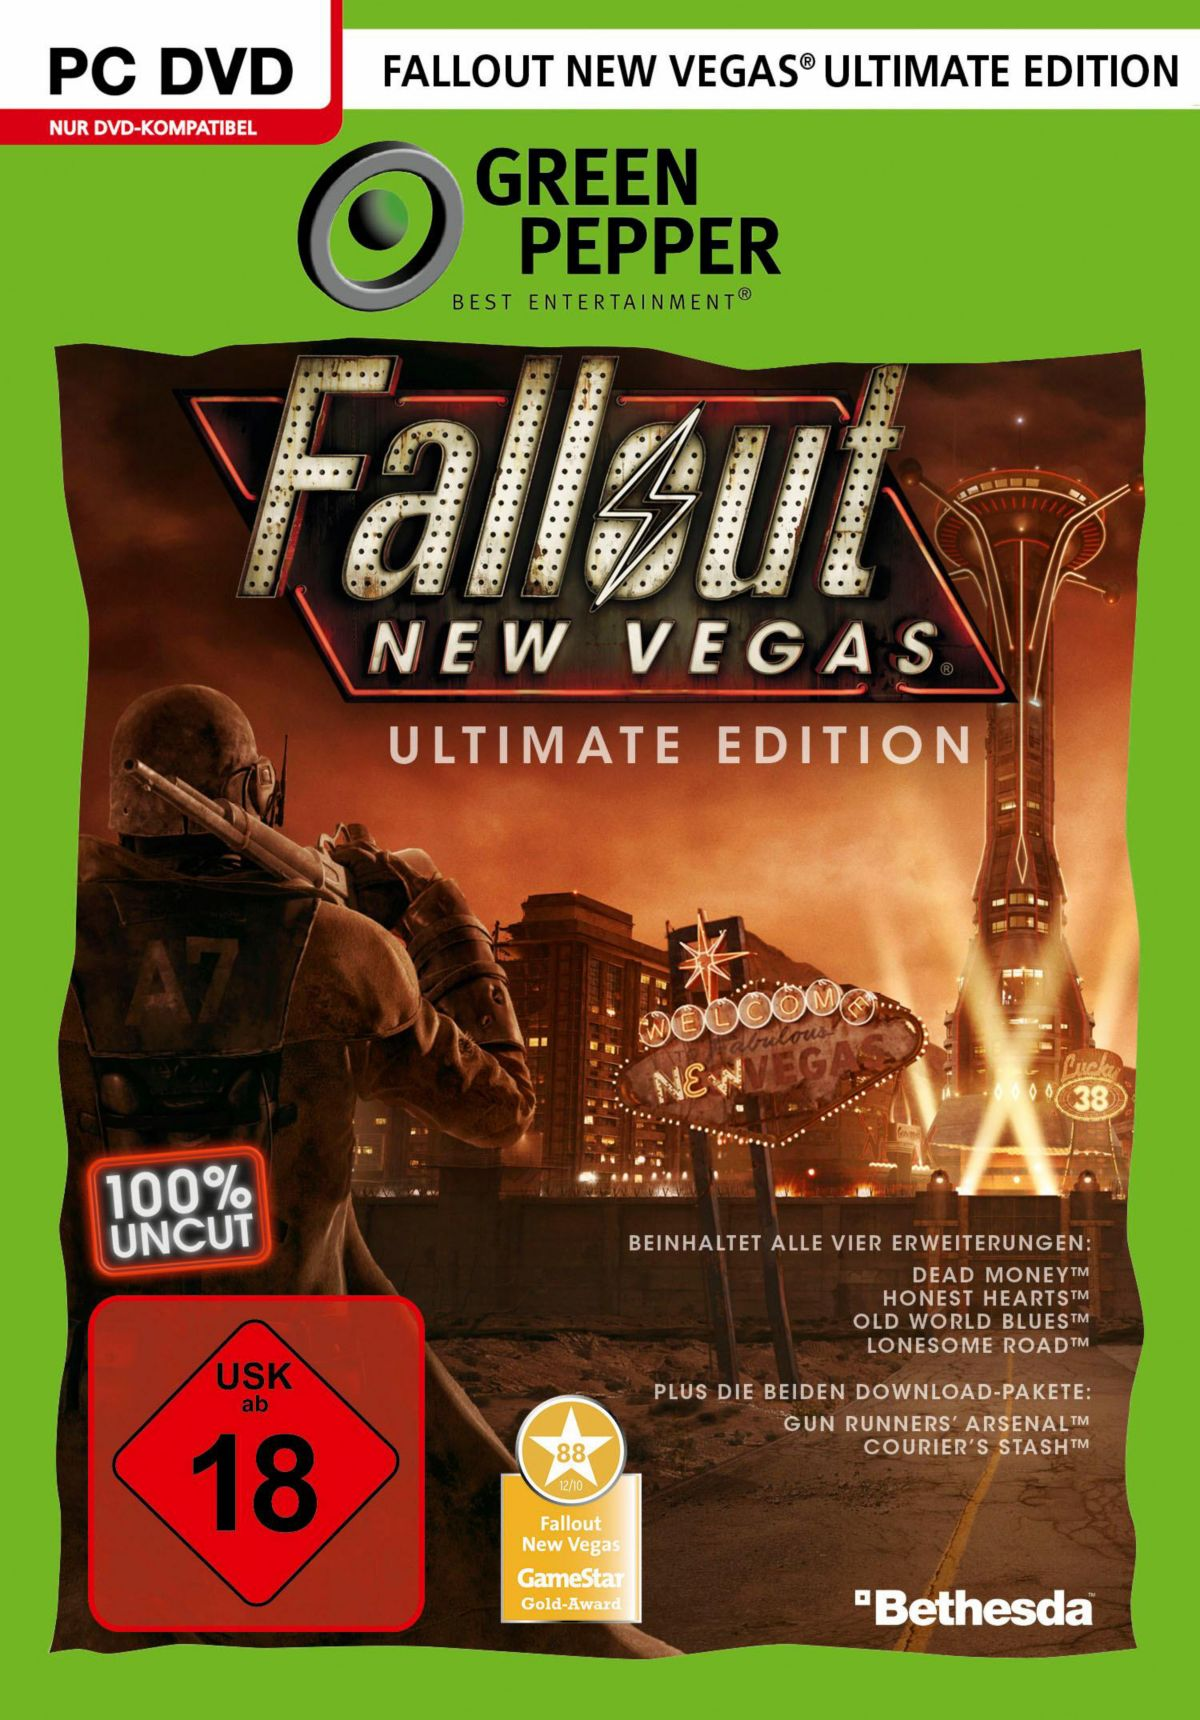 Fallou New Vegas - Ultimate Edition PC (DVD-ROM)